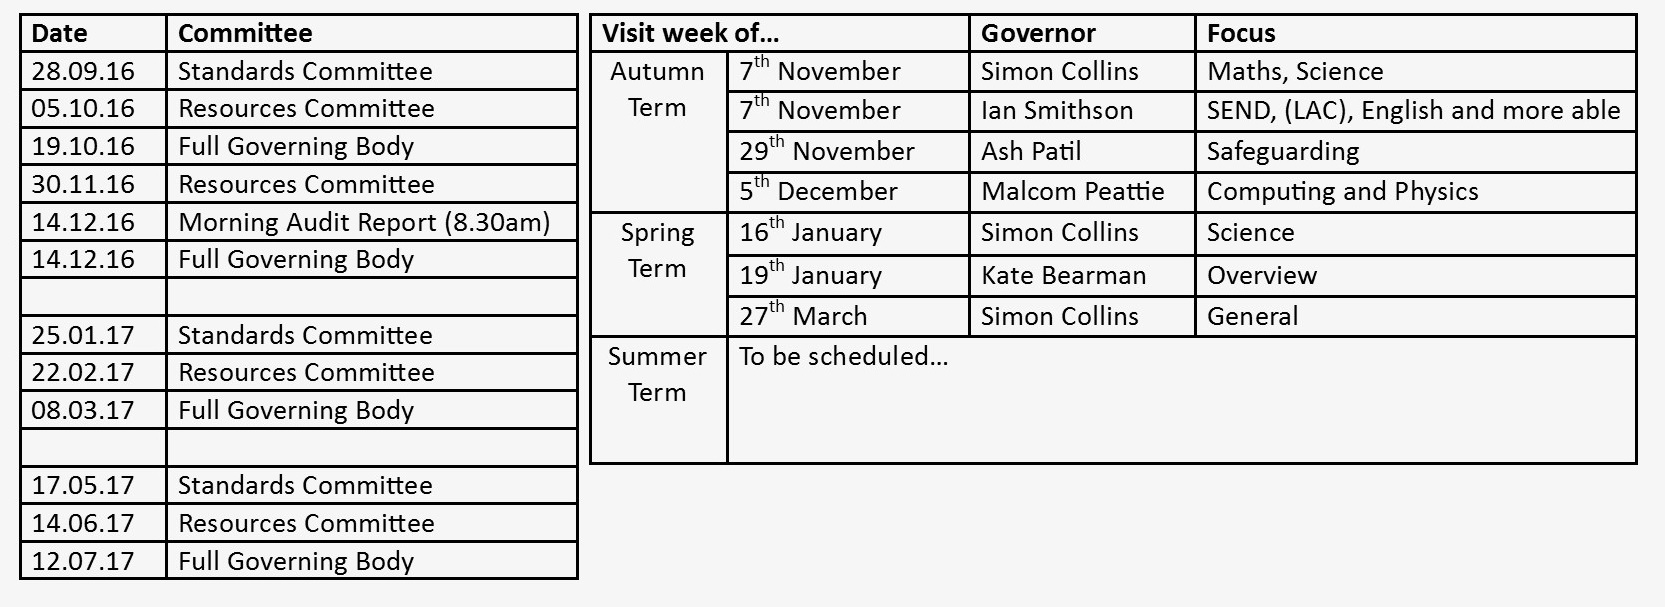 governor-dates-and-visits